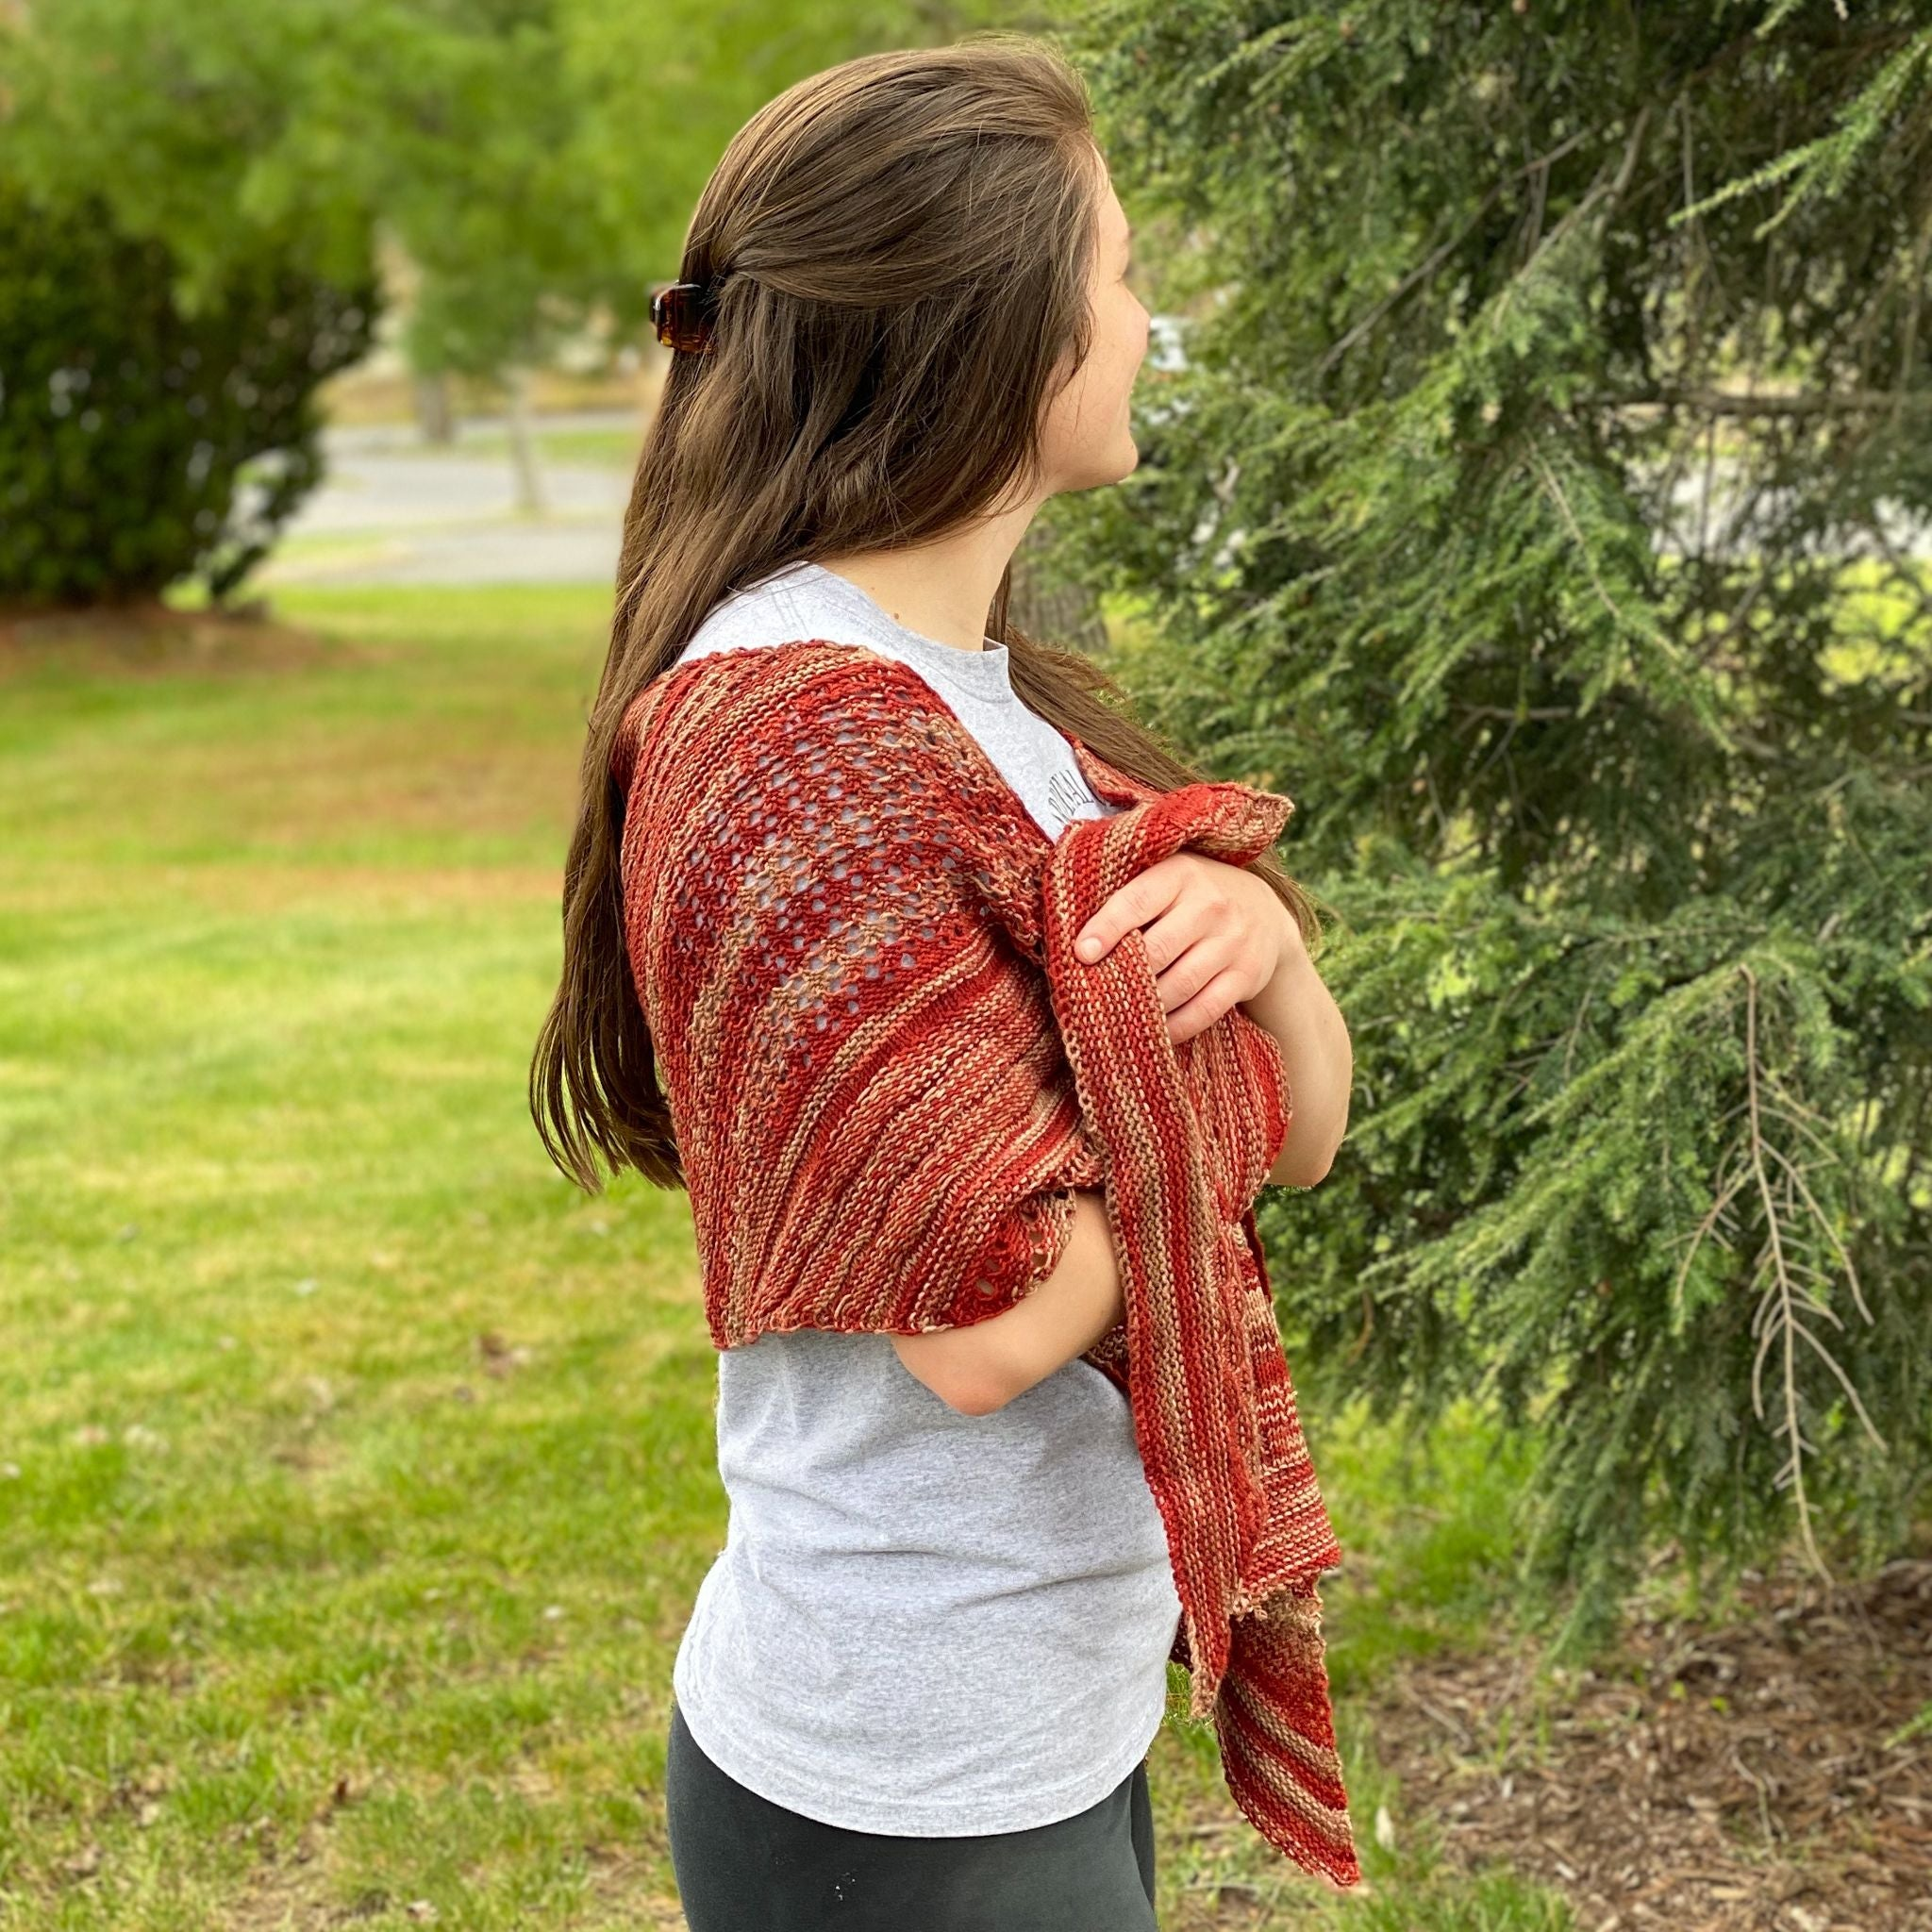 Brunette woman wearing maroon and orange madeleine shawl looking completely away from the camera in front of tree.